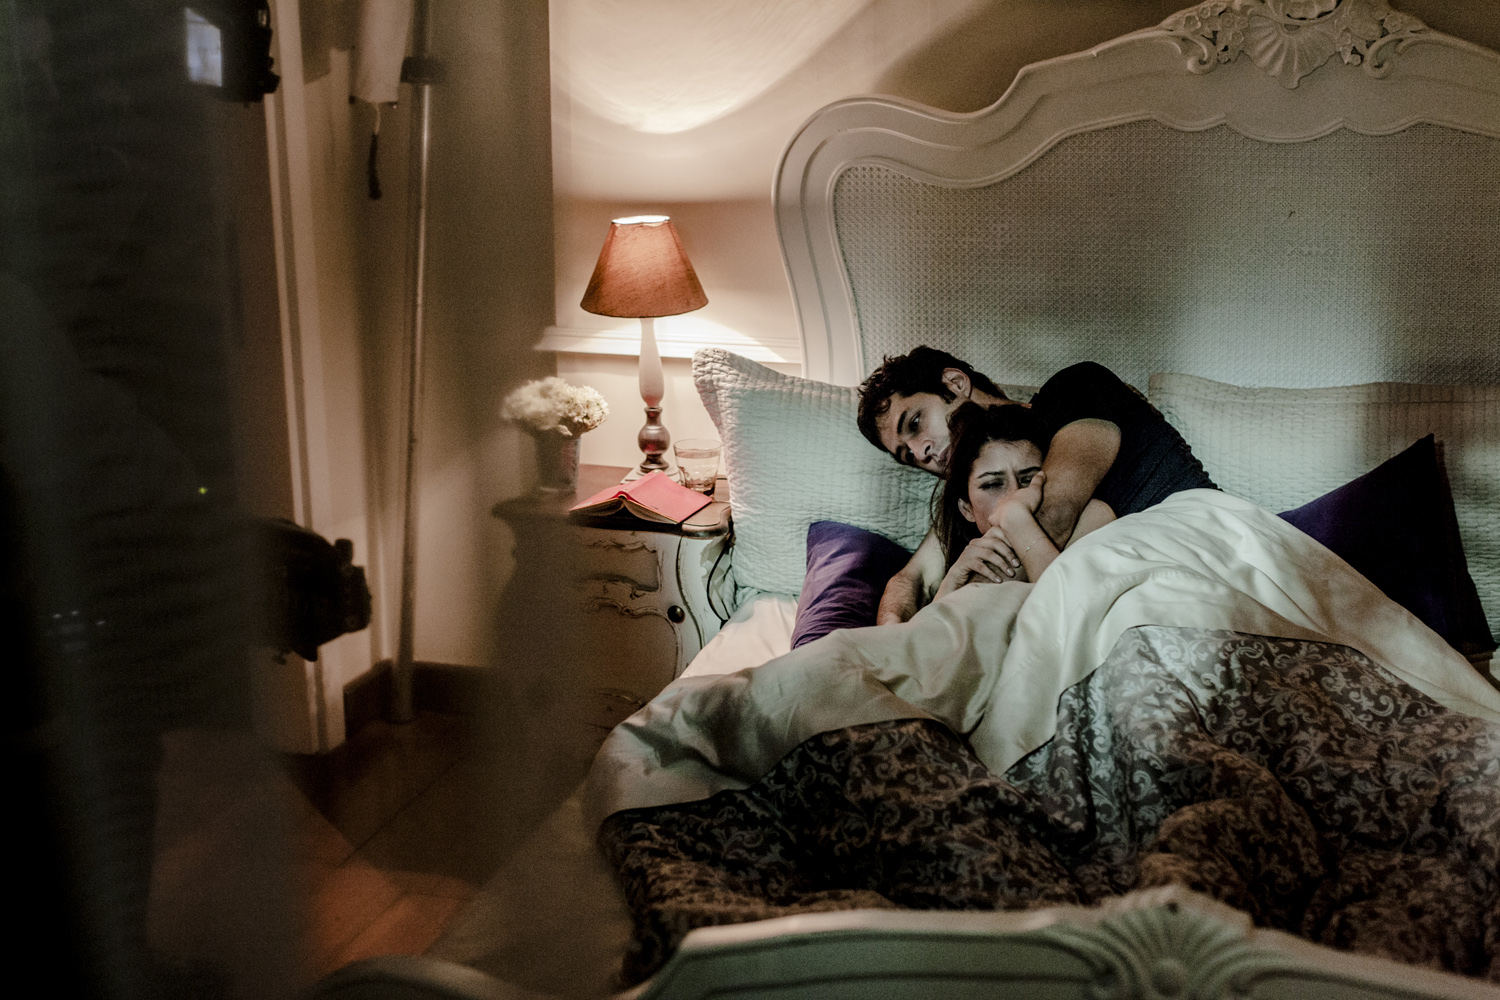 A man comforts his girlfriend in a mansion on the Bosphorus, Istanbul, March 2013.